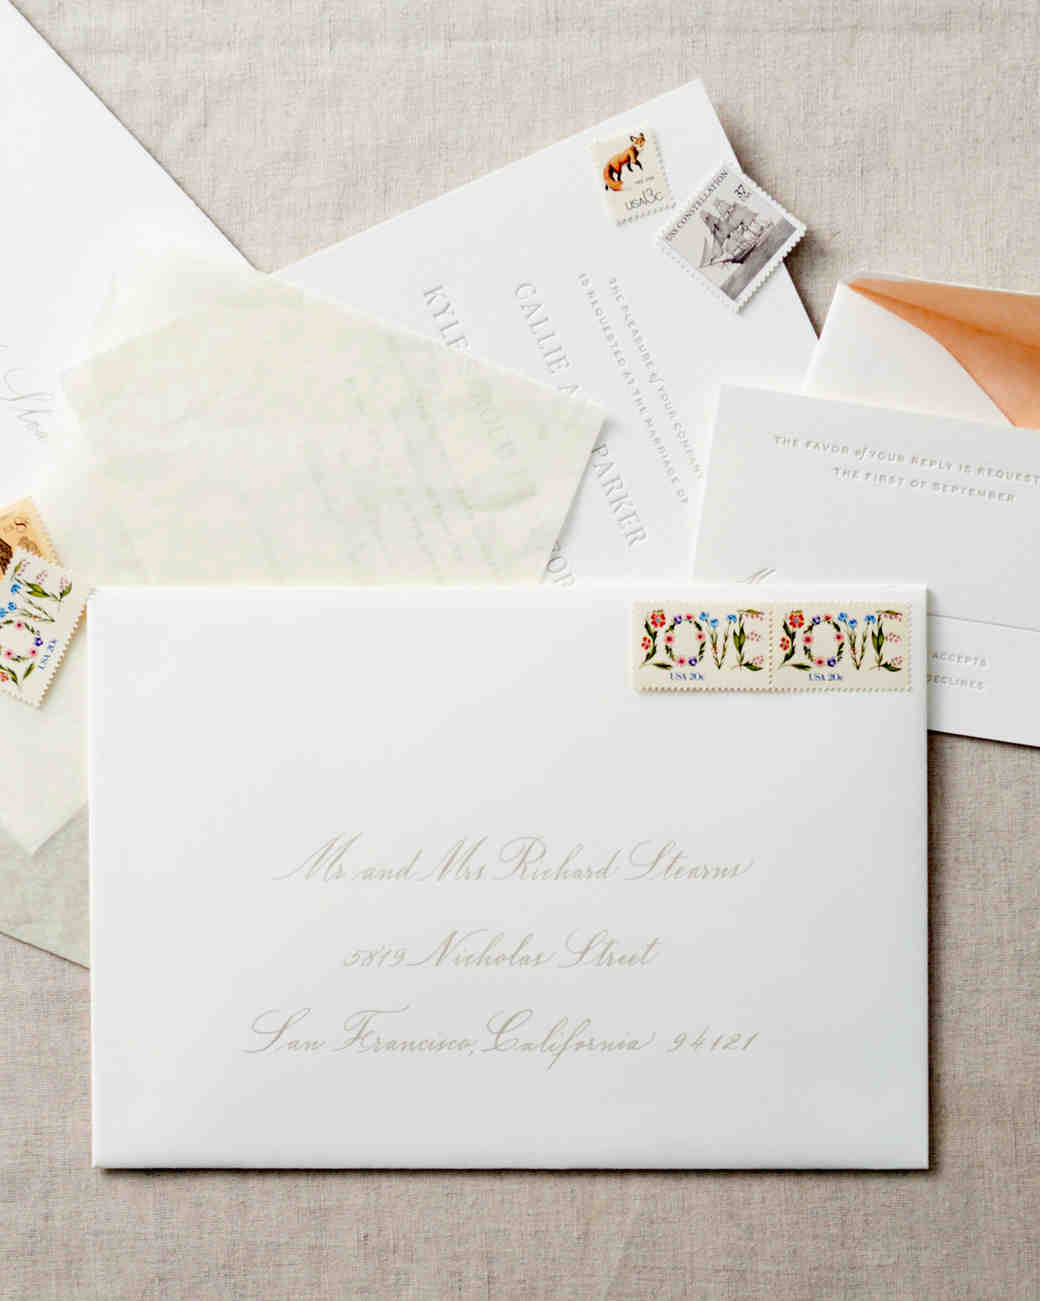 Attractive Guestsu0027 Names. Though Etiquette For Addressing And Assembling Wedding  Invitations ...